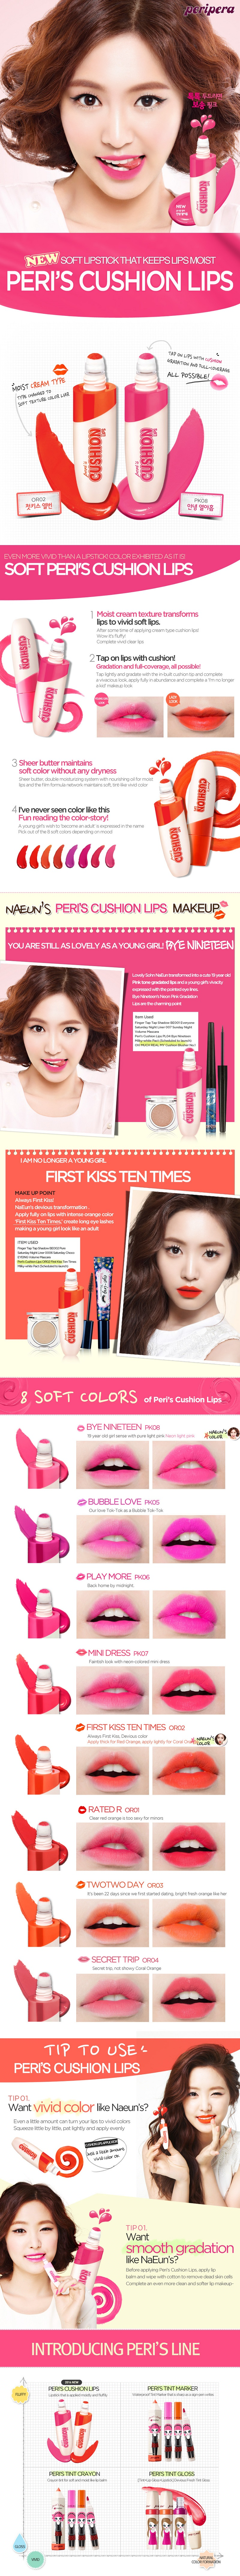 PERIPERA Peris Cushion Lips - 8 Colors